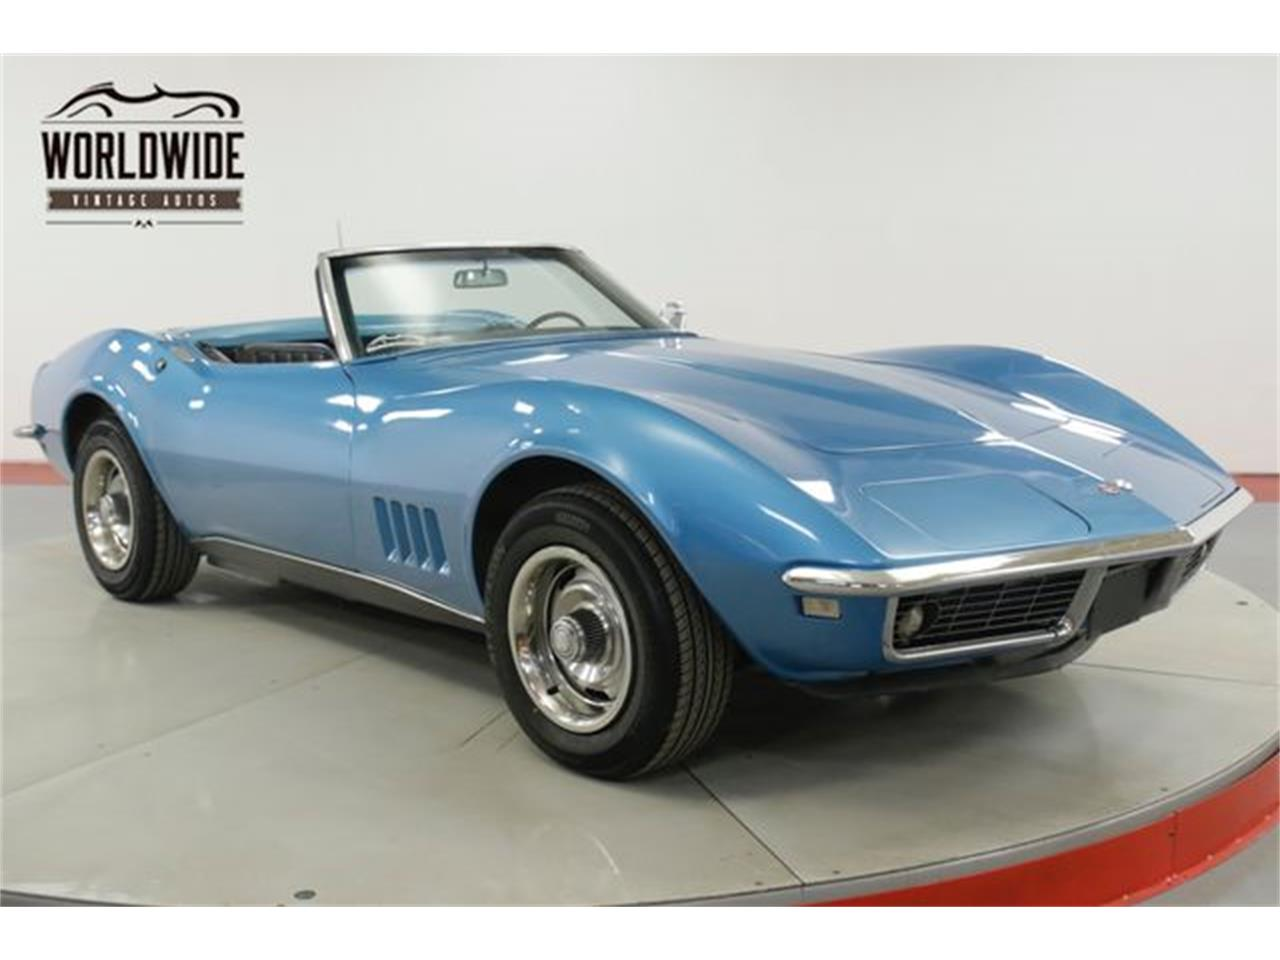 Large Picture of '68 Corvette located in Colorado - $24,900.00 Offered by Worldwide Vintage Autos - PLDH